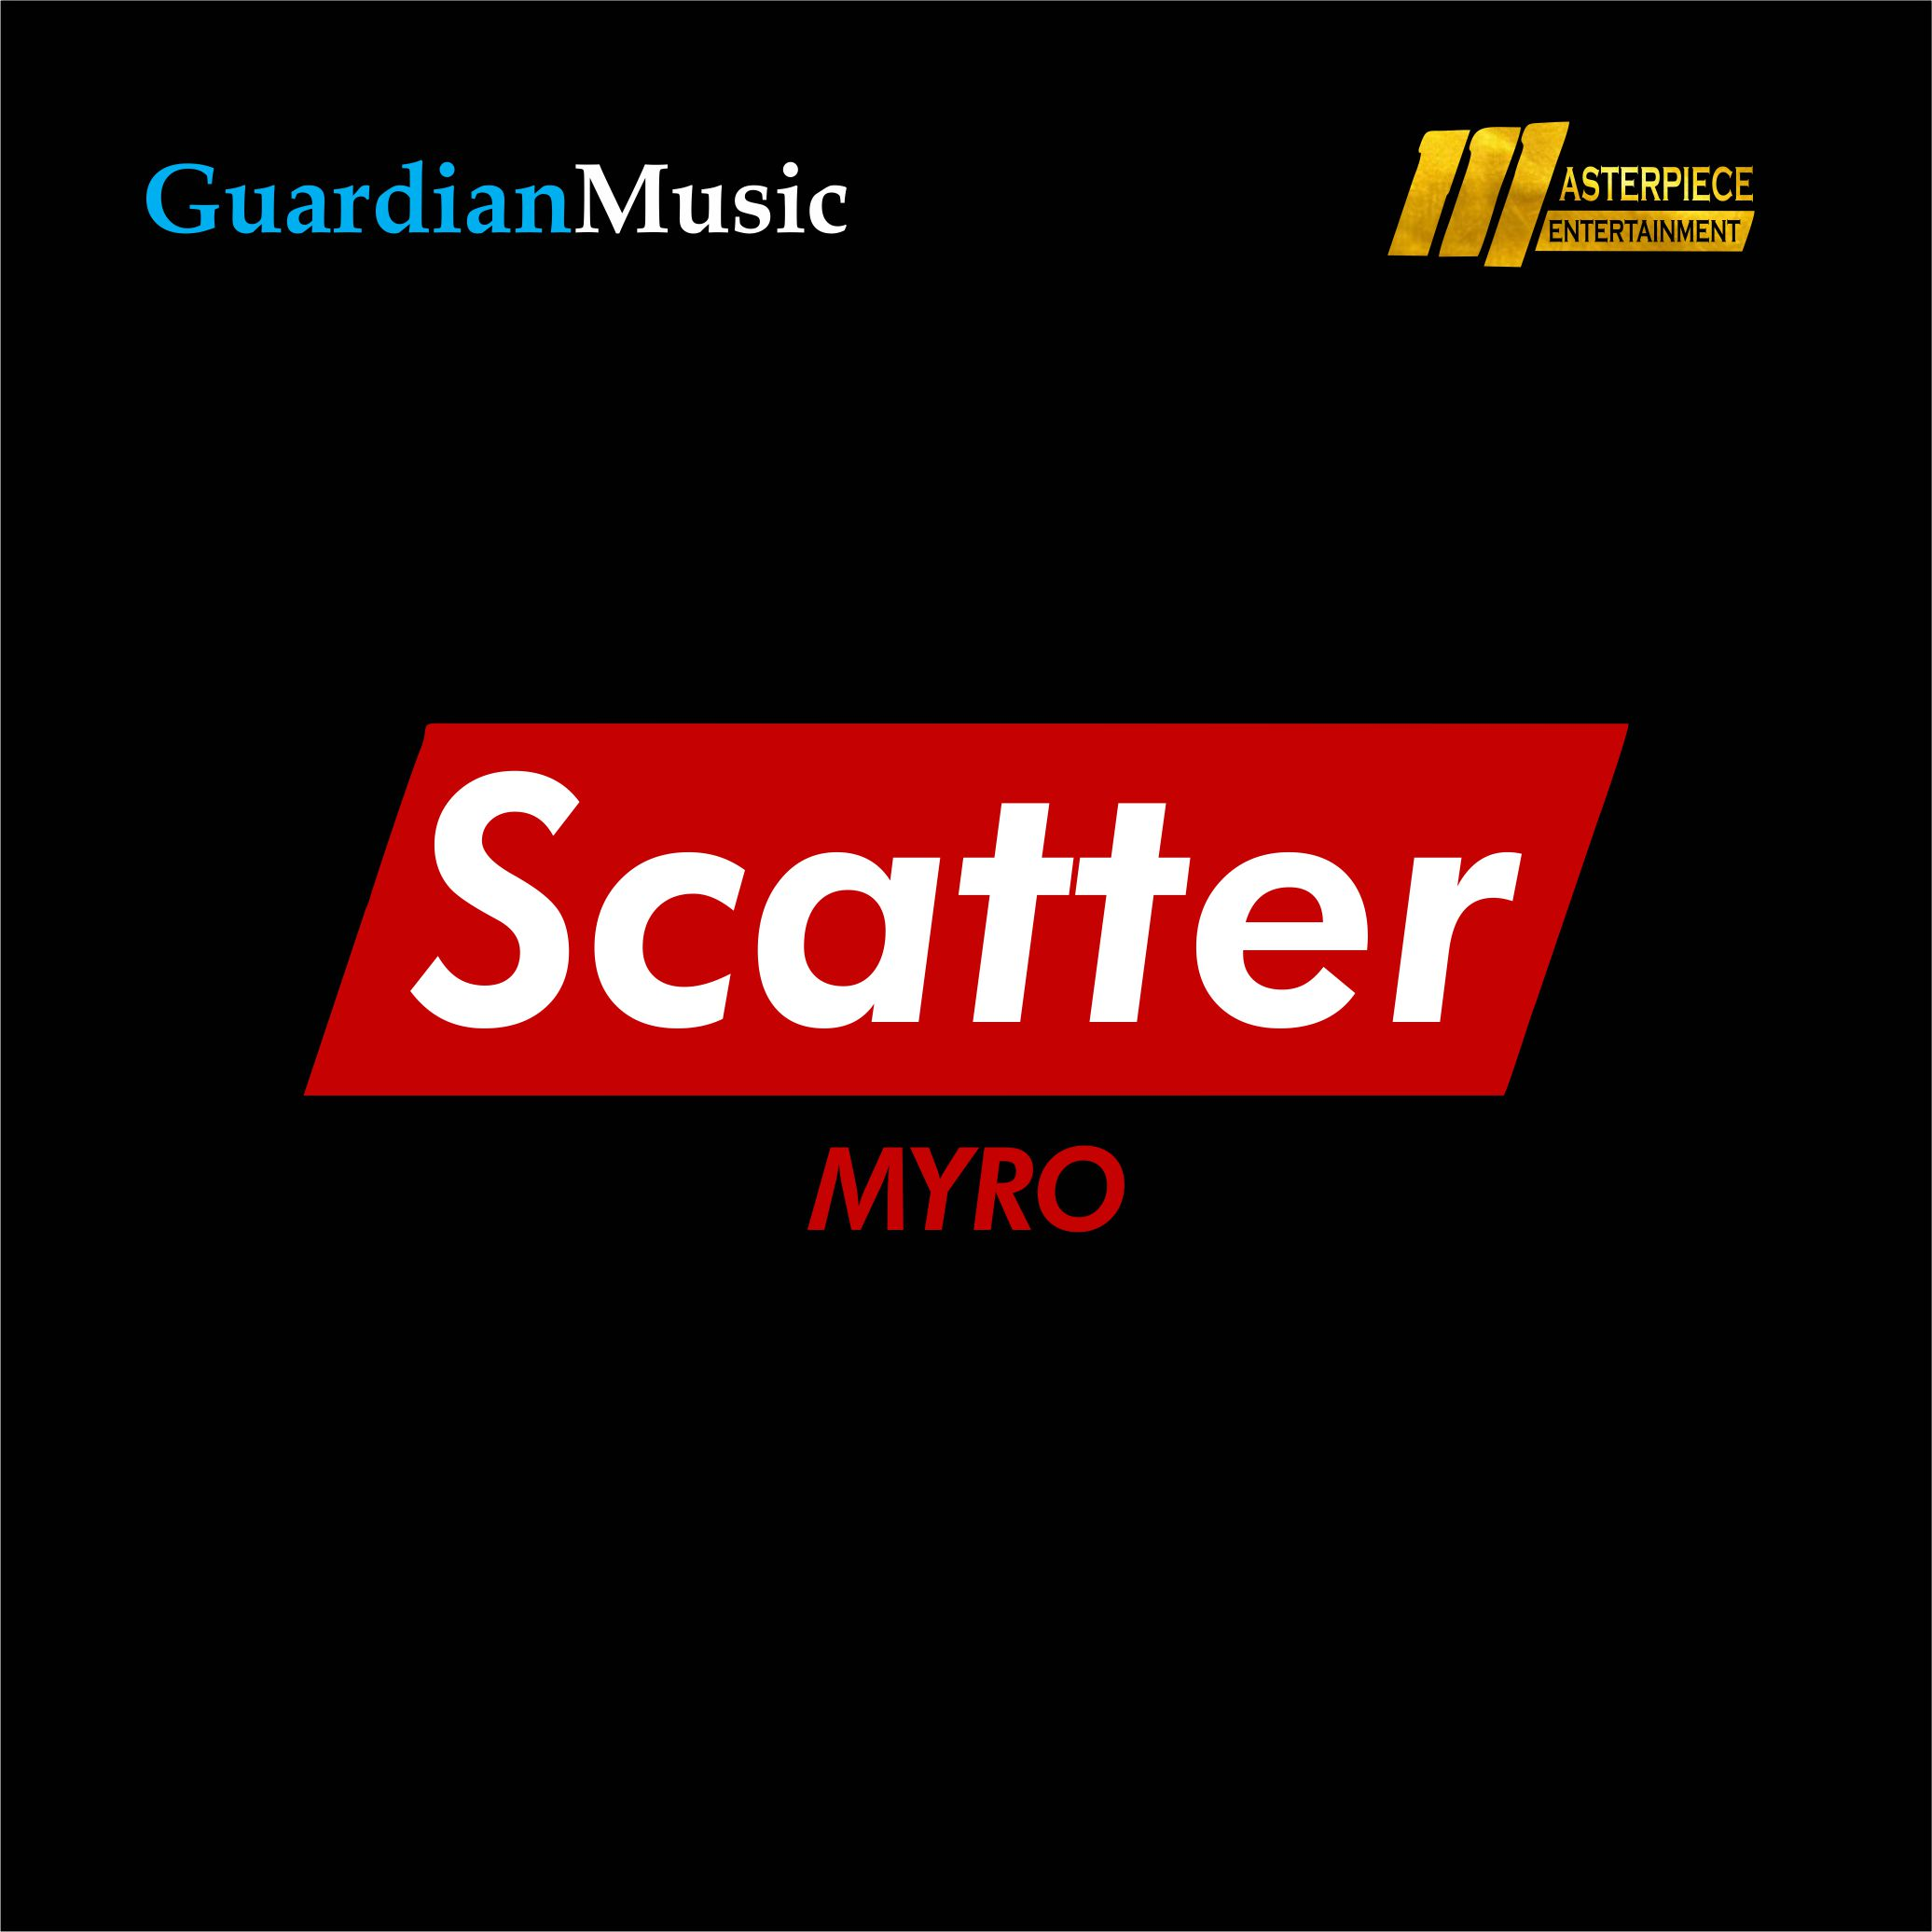 New Music; Myro-(Scatter)